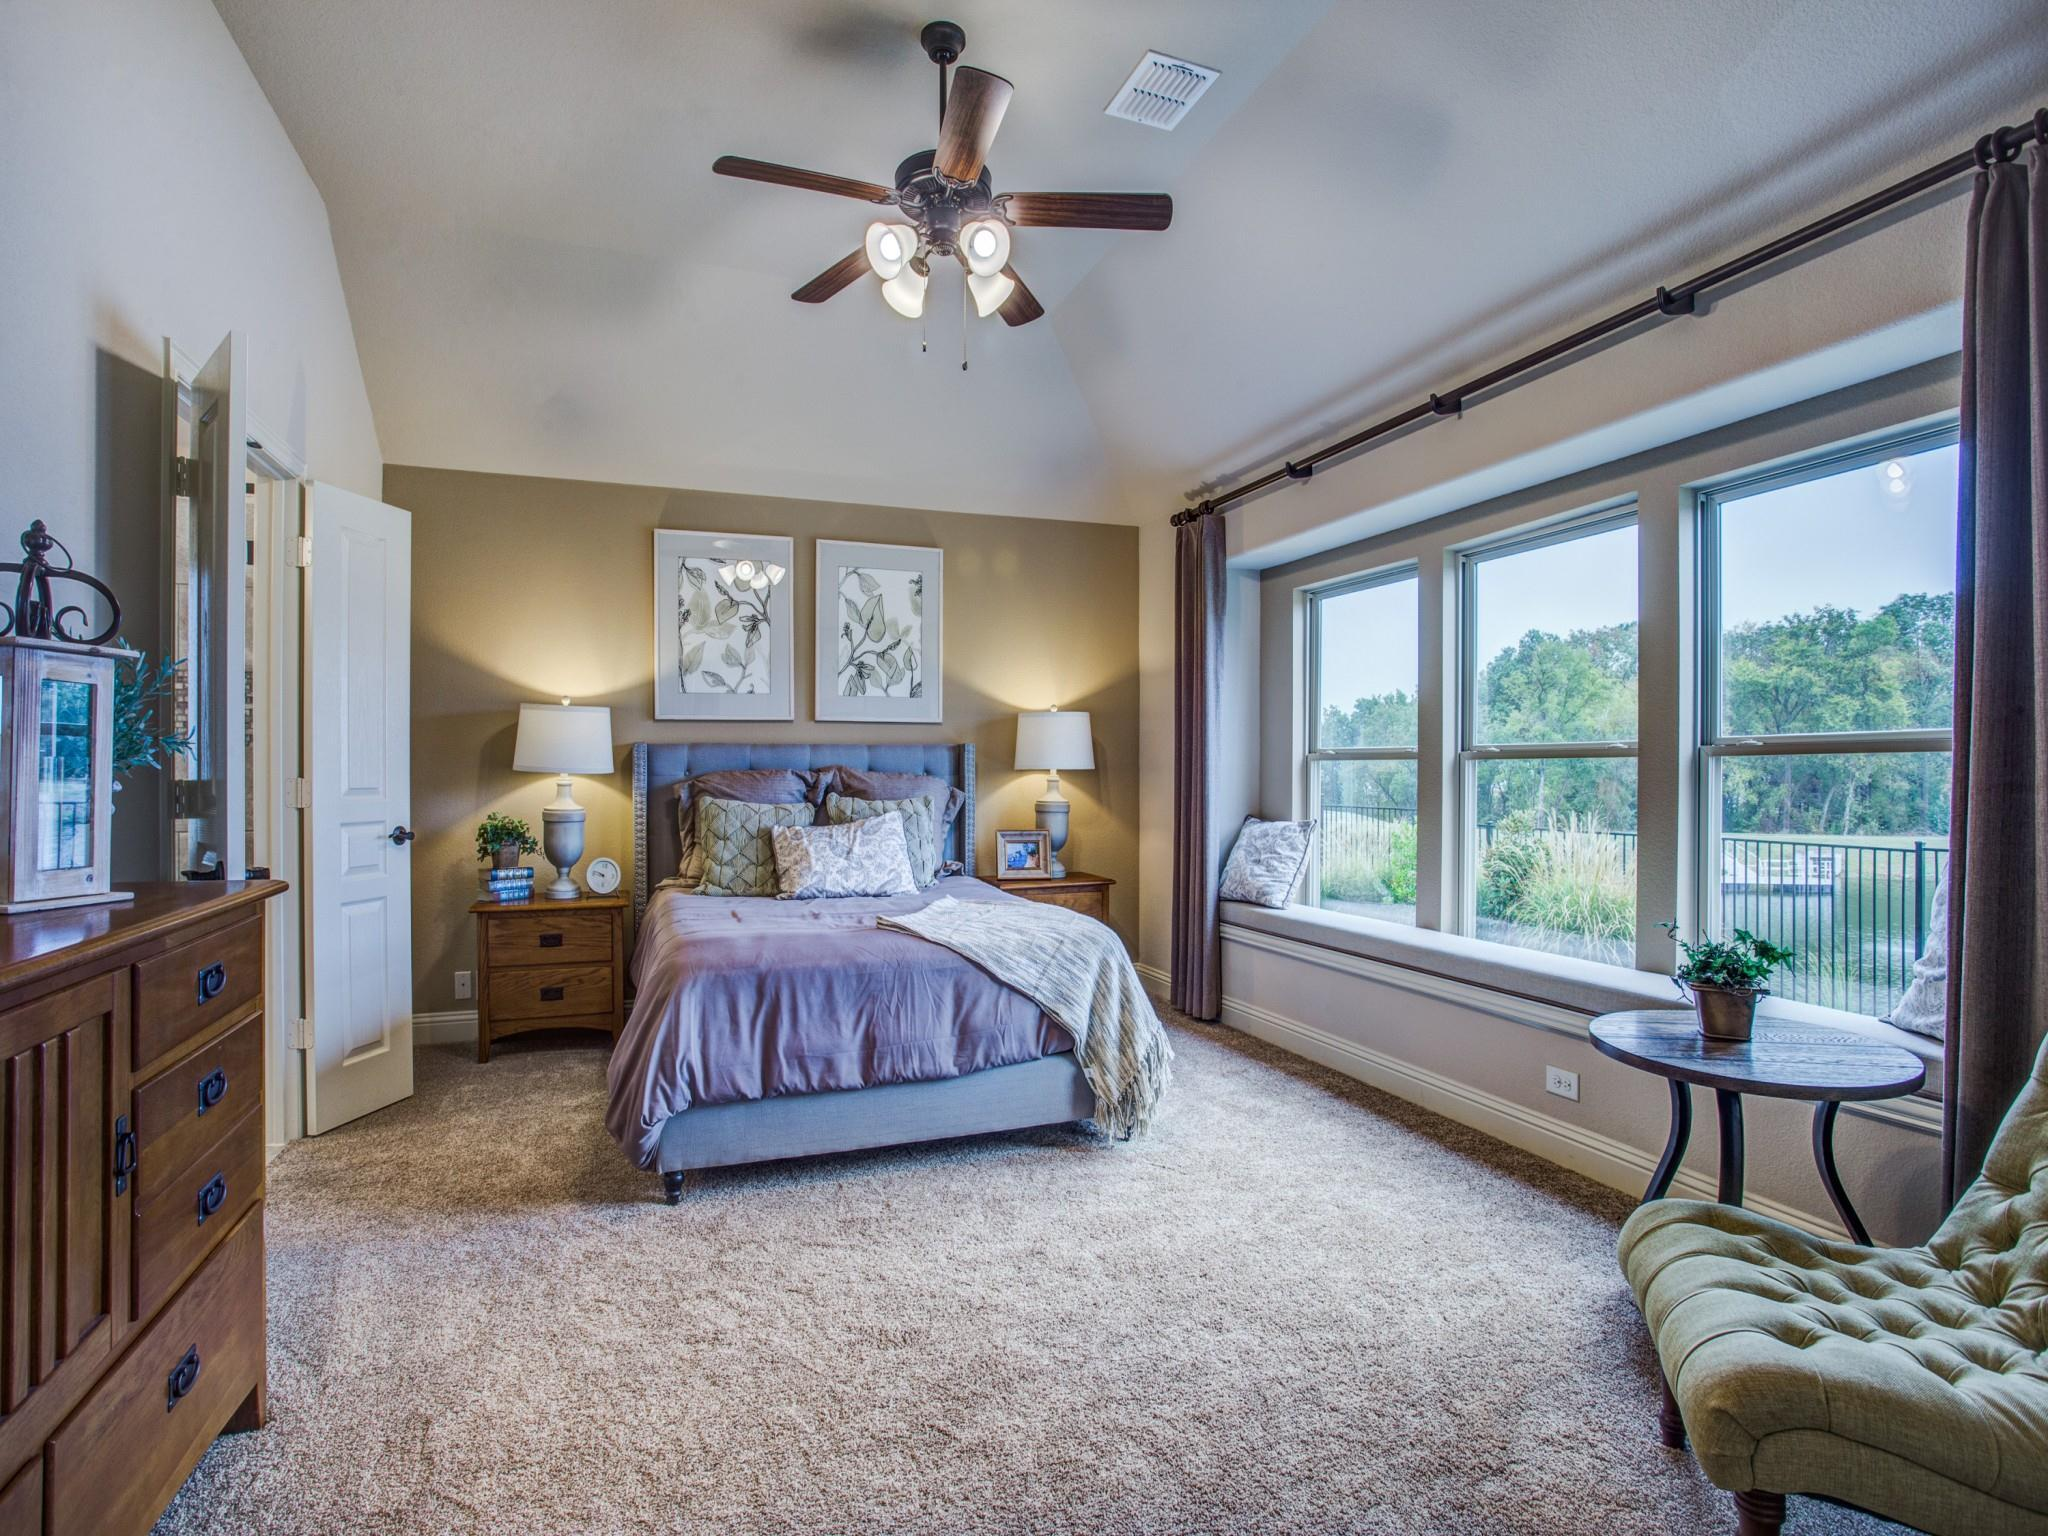 Bedroom featured in the Dogwood III By Bloomfield Homes in Dallas, TX